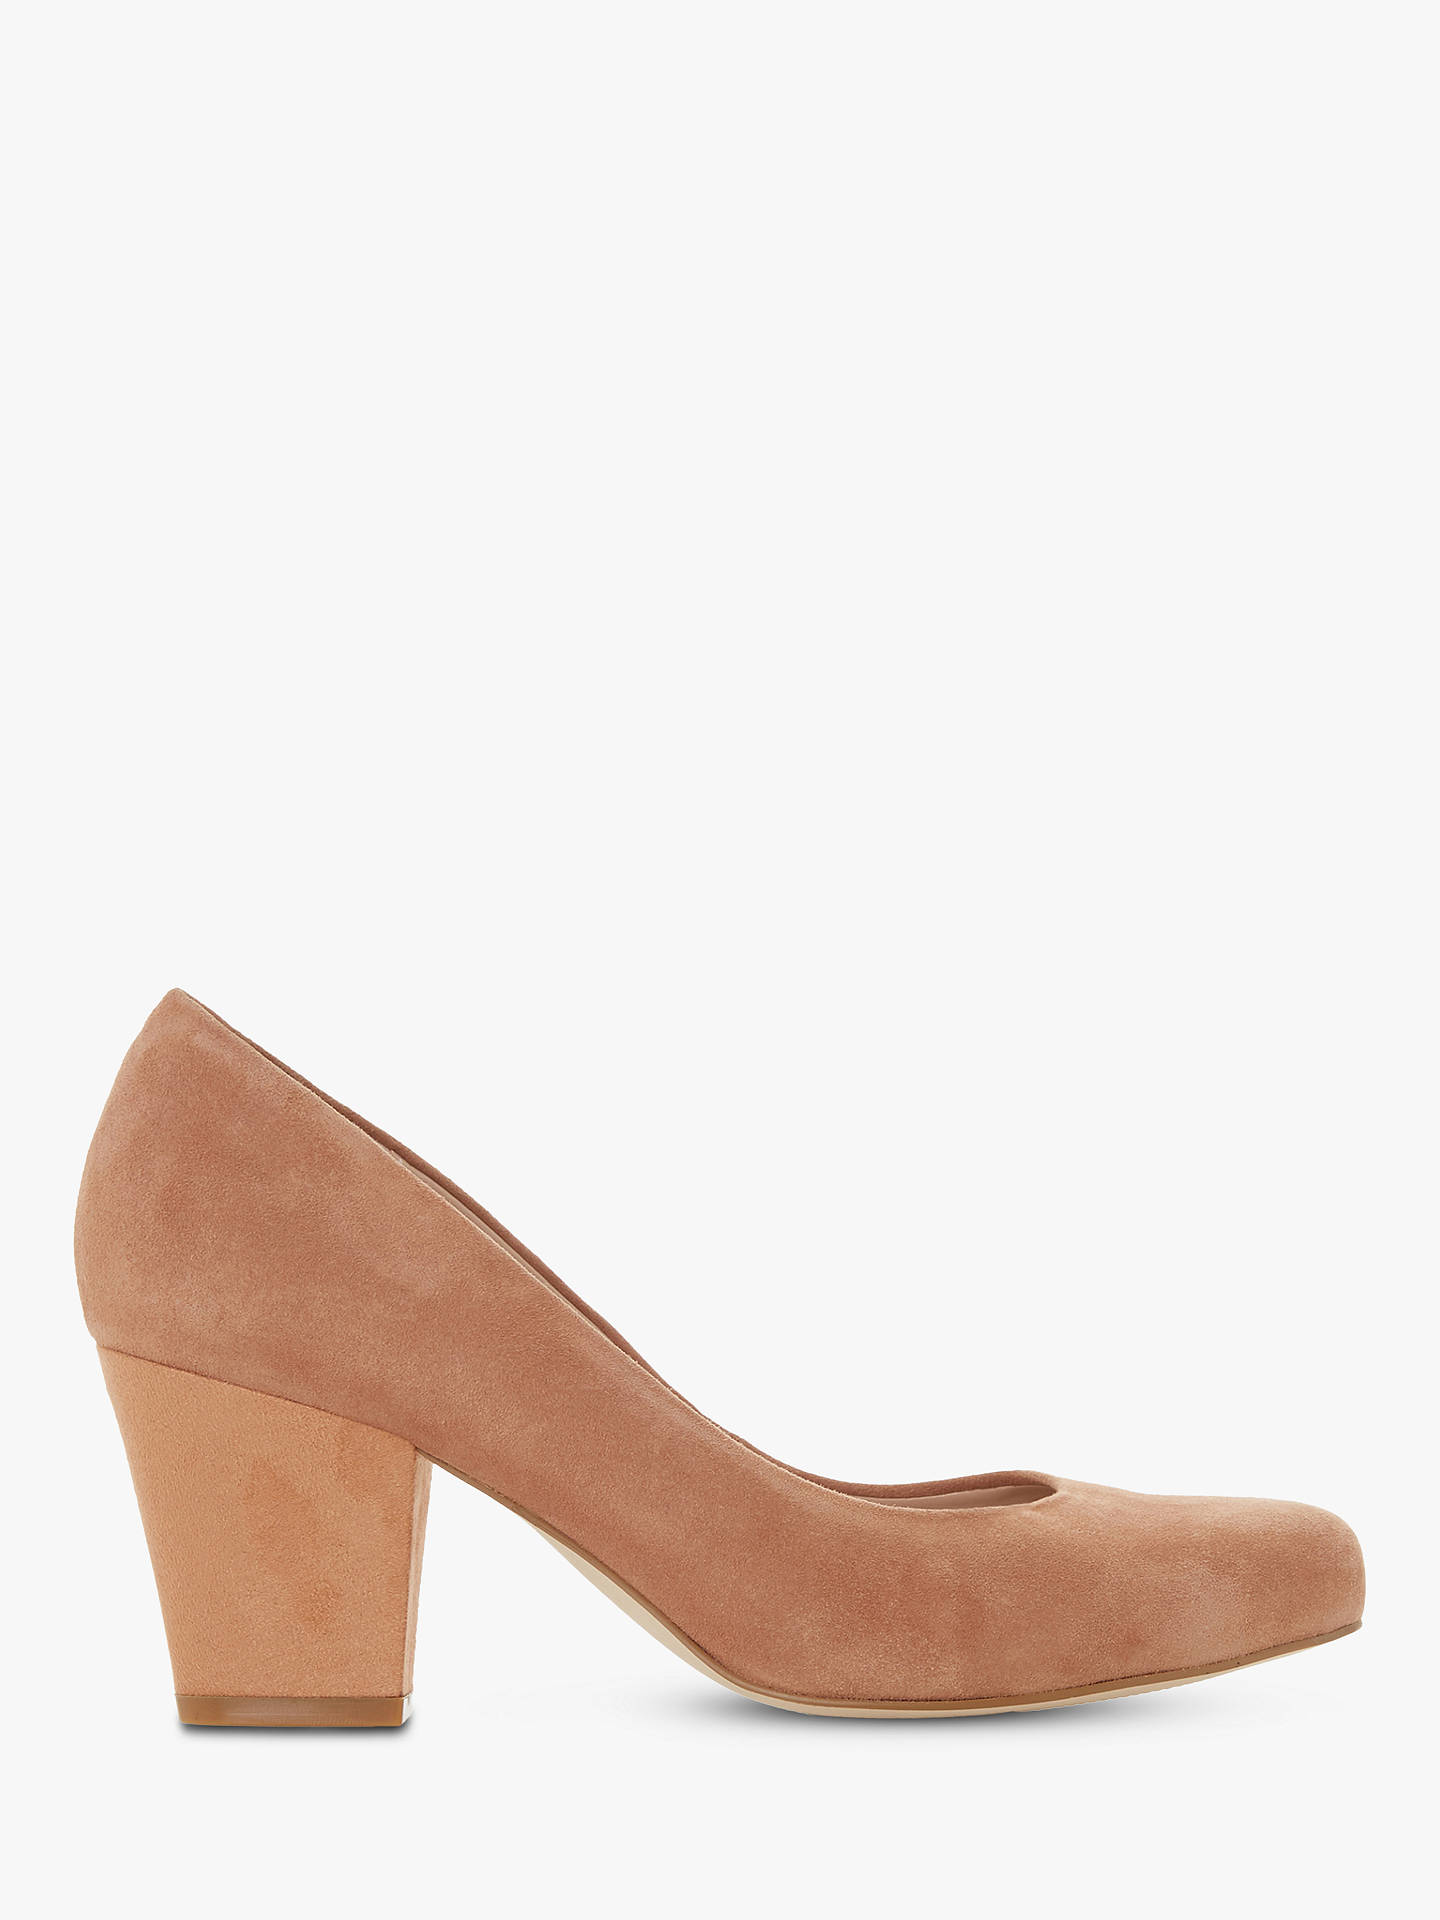 Dune Anthena Suede Block Heel Court Shoes, Brown Camel at